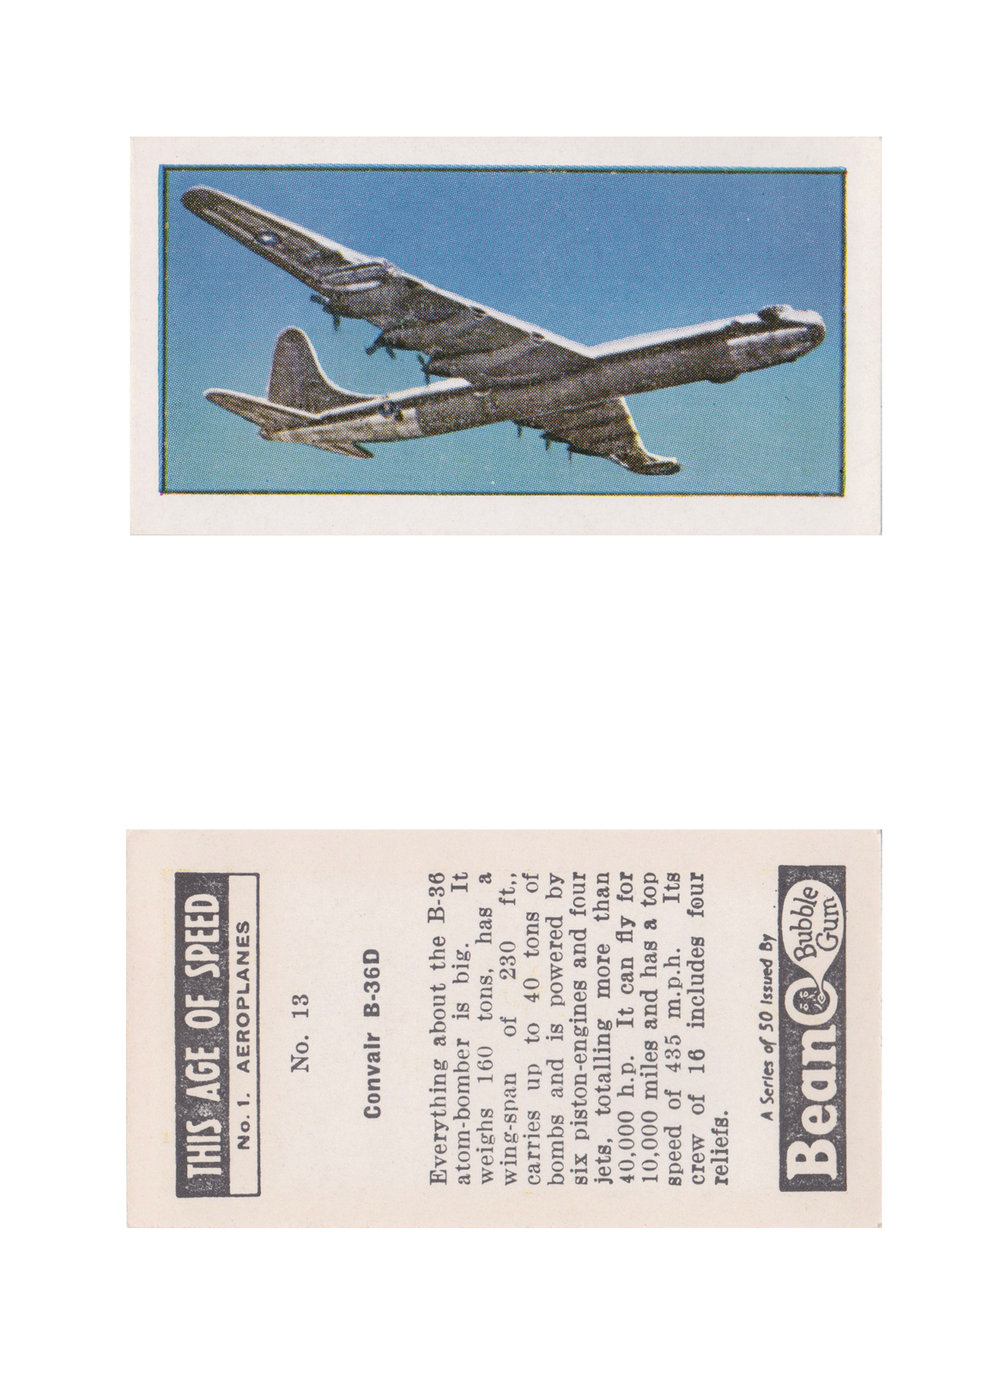 "Convair B-36D  Series: This Age of Speed- No.1 Aeroplanes Manufacture: Beano Bubble Gum Card Dimensions: 2.68"" x 1.43"" United Kingdom - 1954"